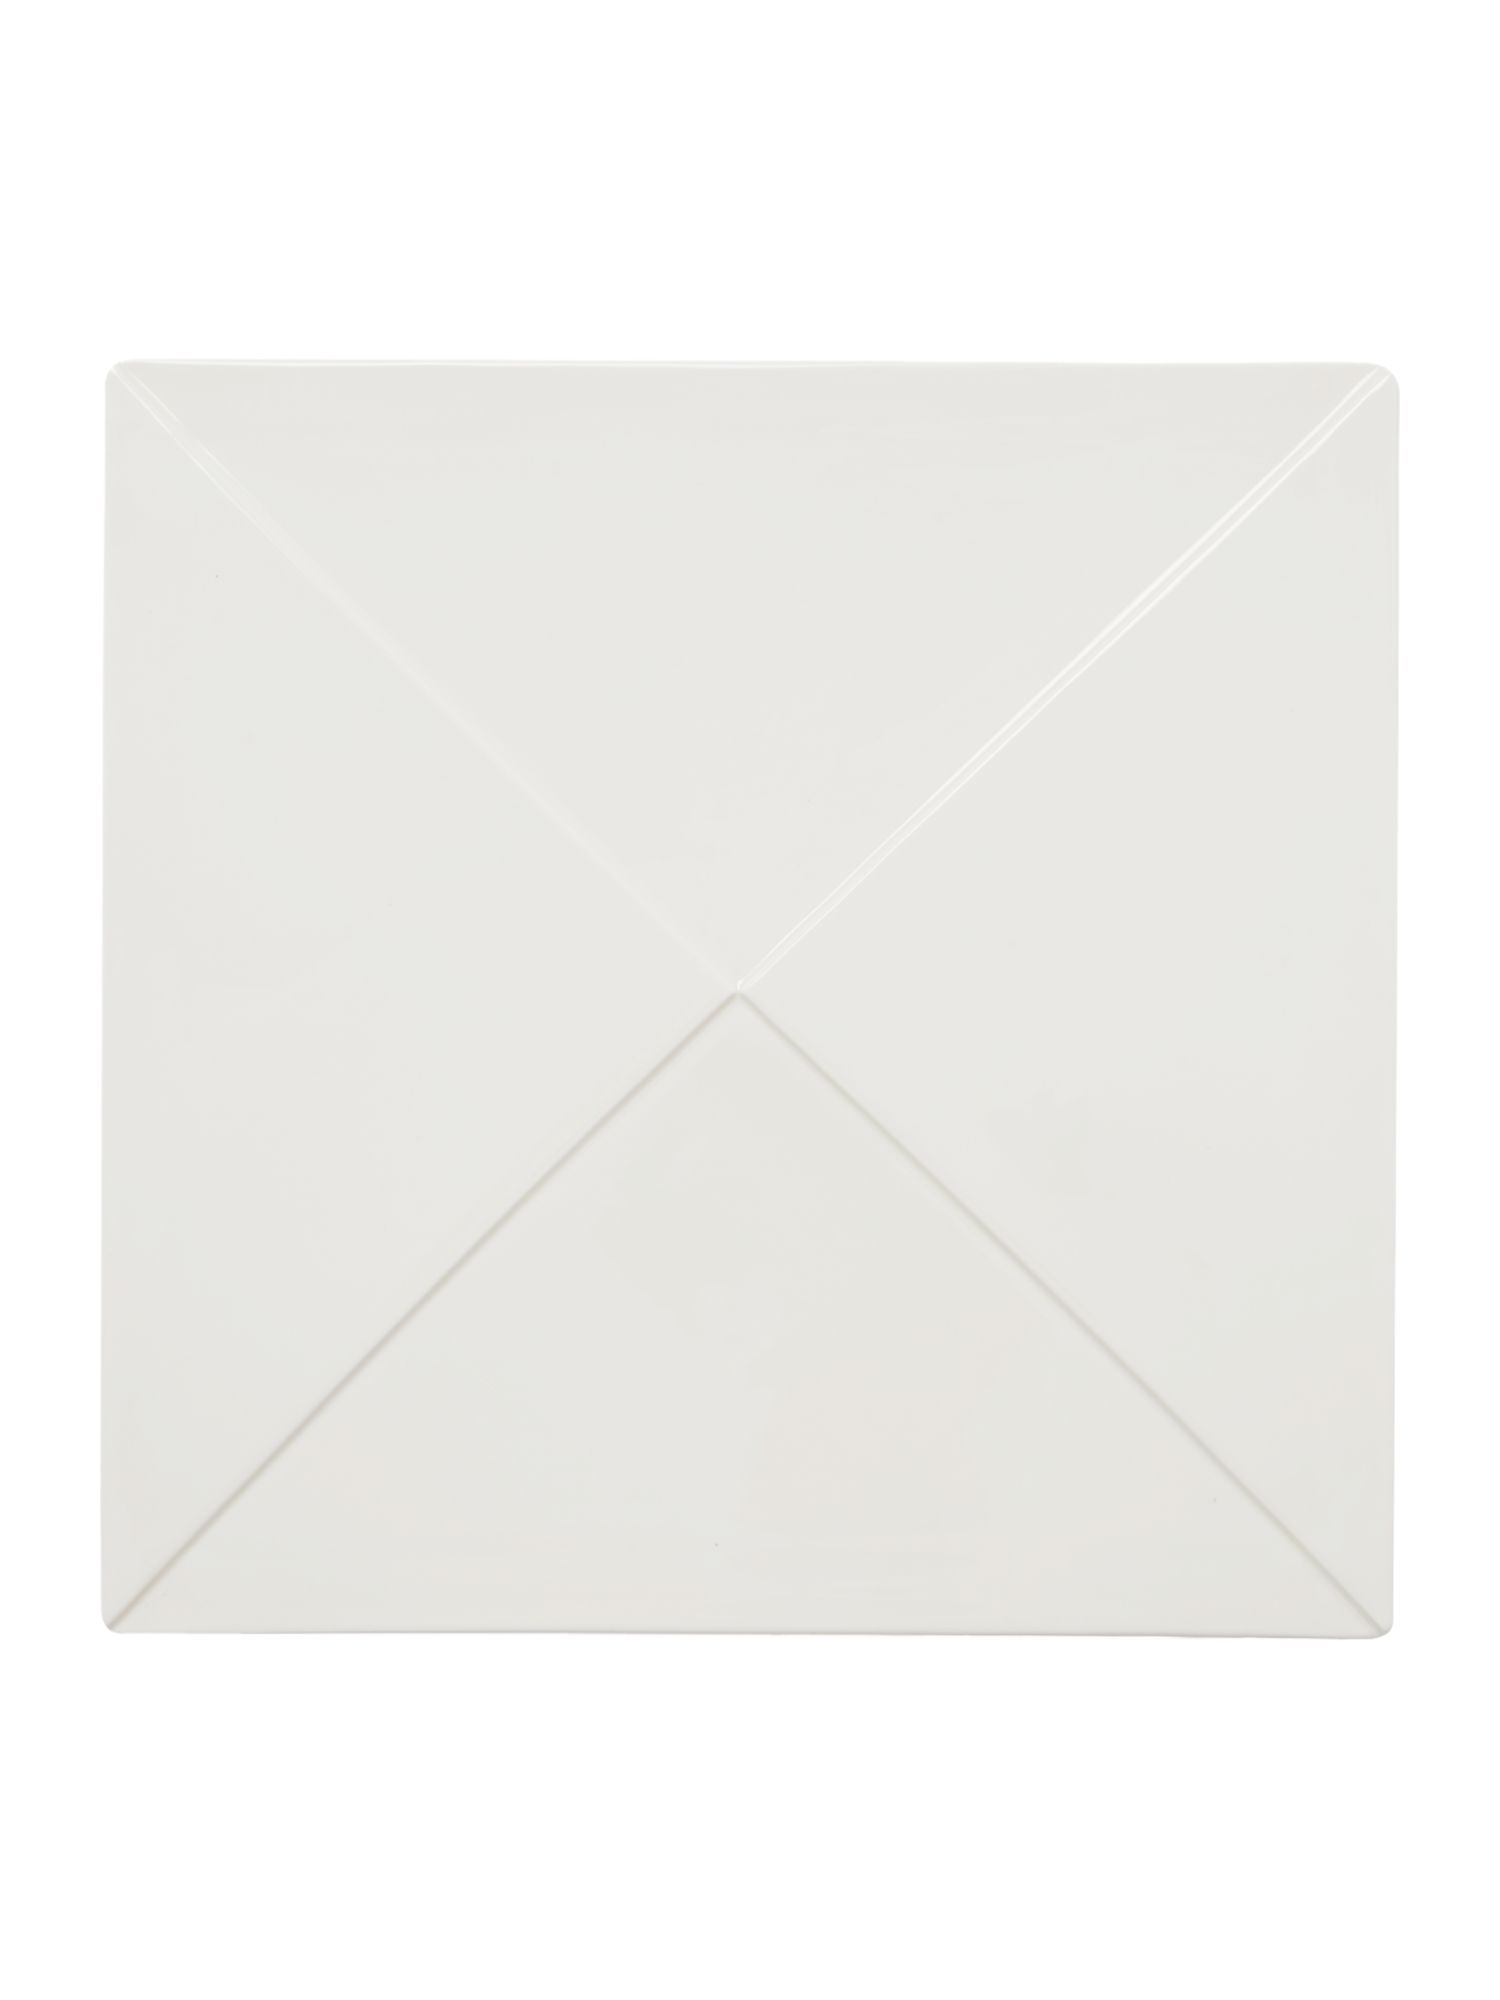 Metrix square platter 30.5cm, triangles